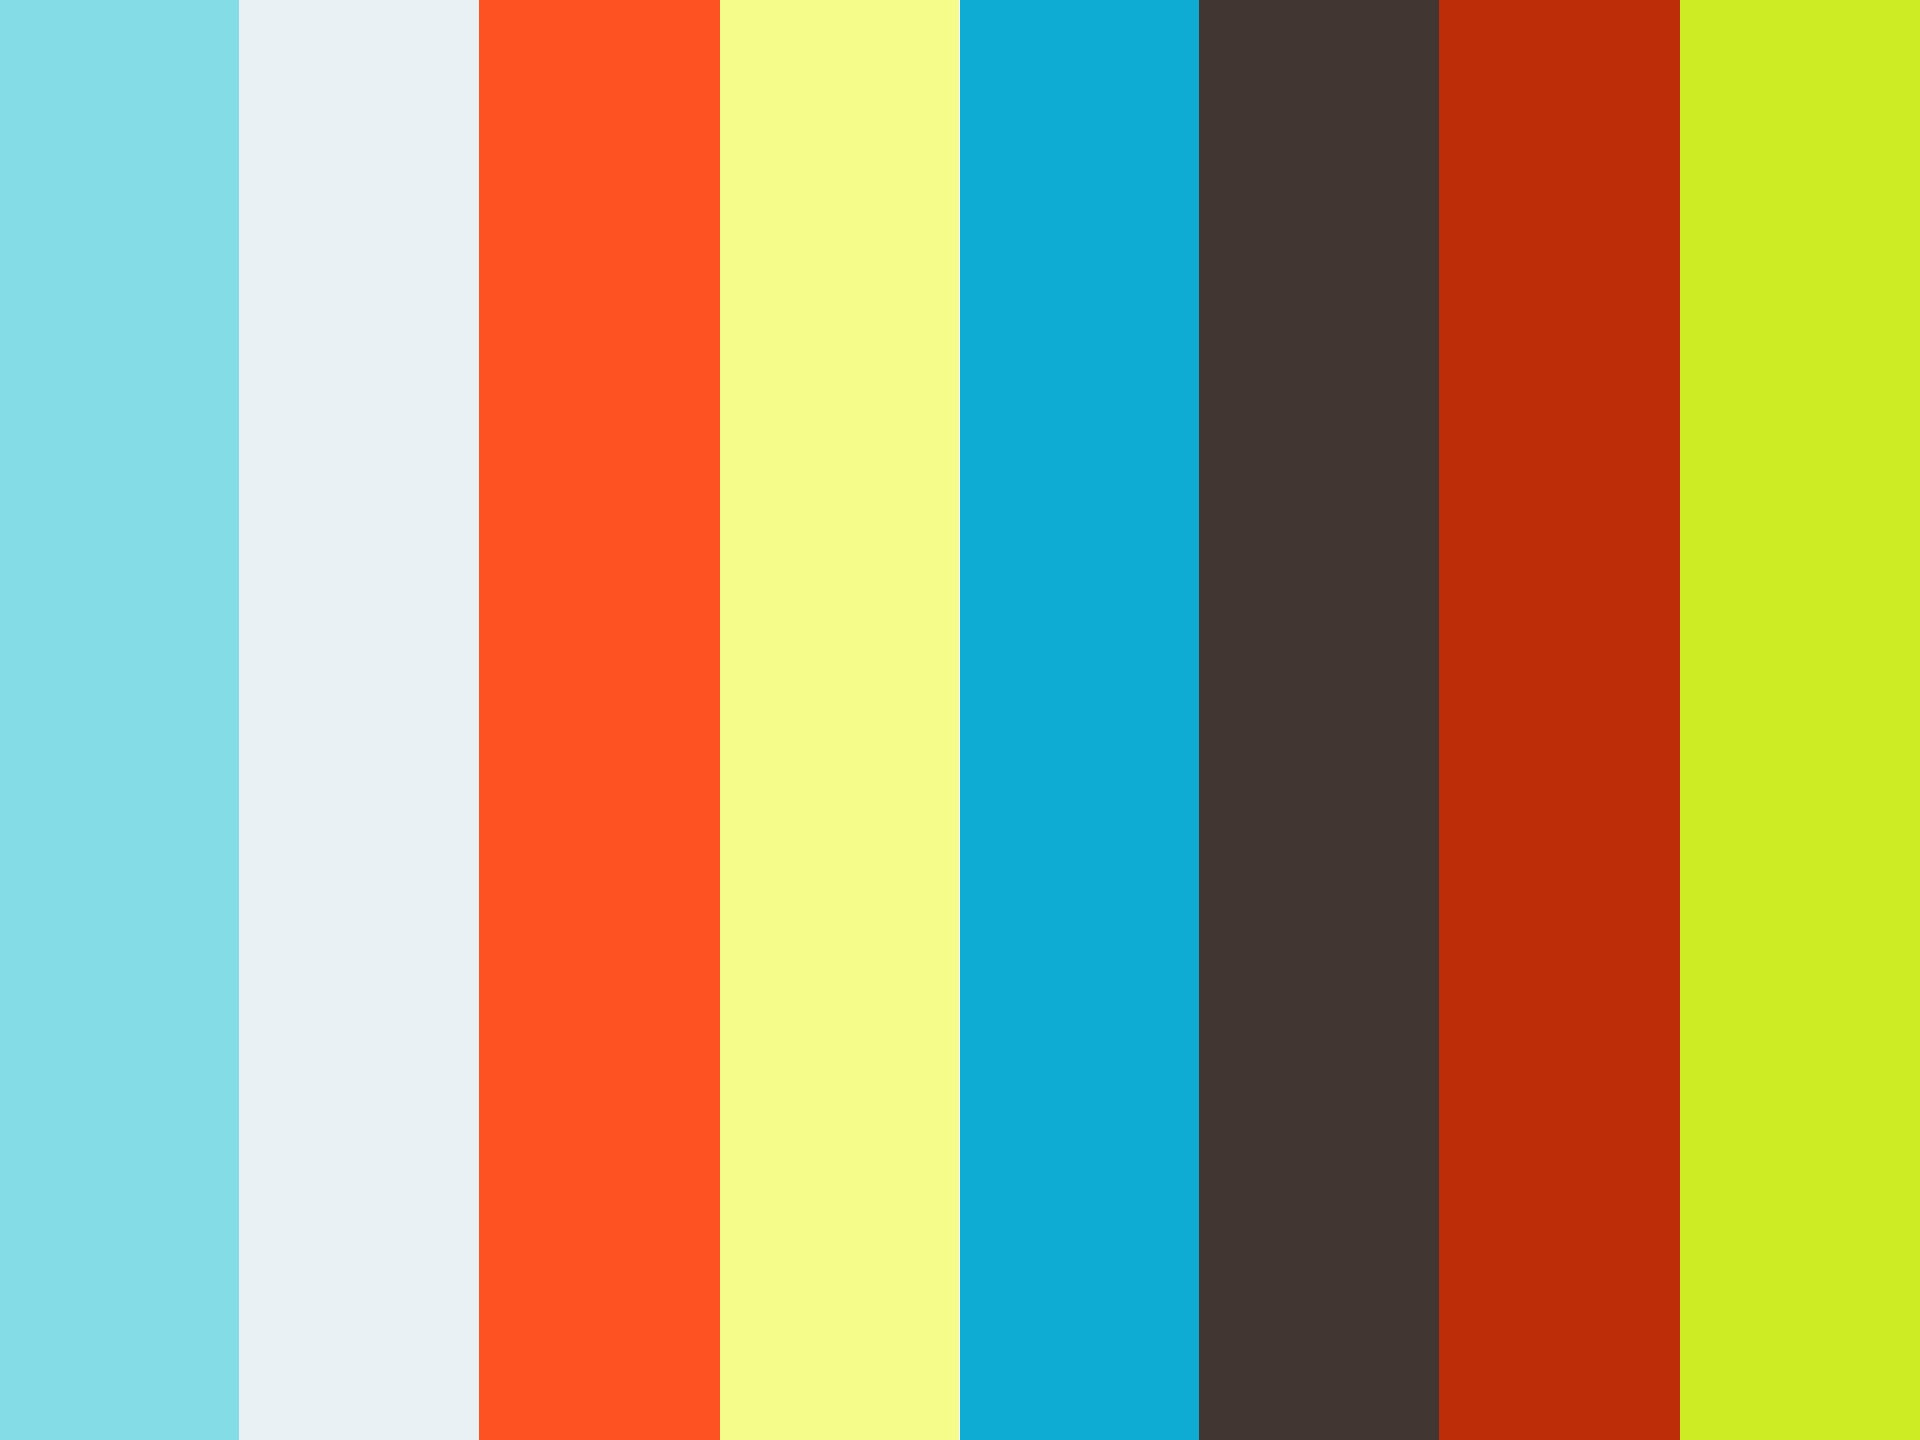 Operative Strategy Modifies Risk of Pouch-Related Outcomes I in Patients with Ulcerative Colitis on Preoperative Anti-TNF Therapy 2013